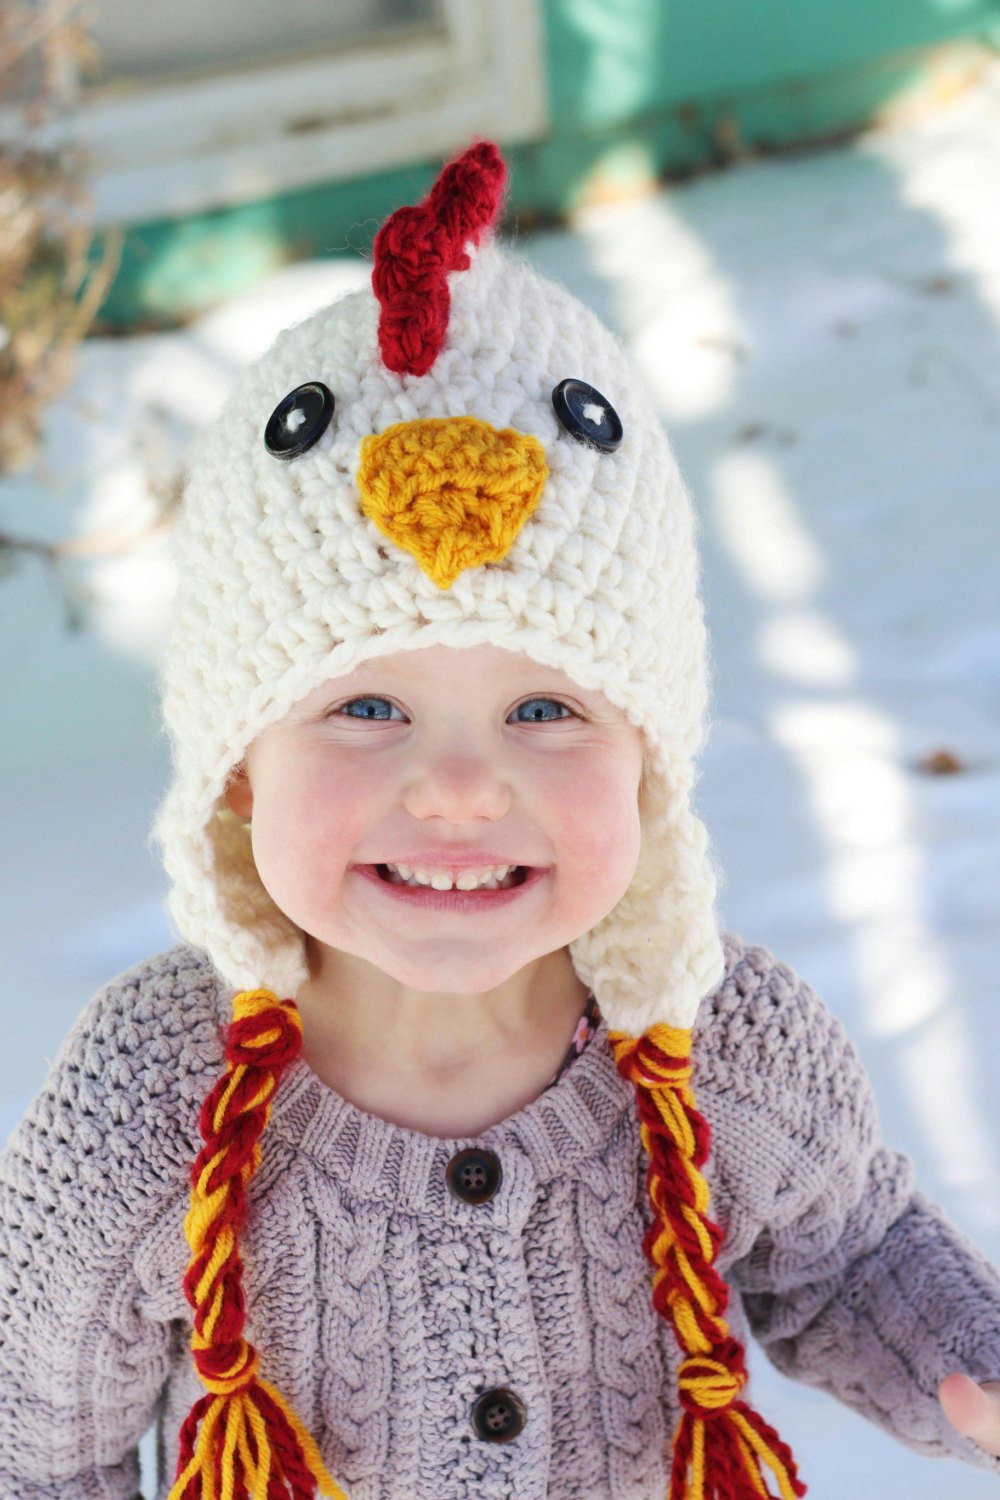 Awesome Chicken Hat Pdf Crochet Pattern Photo Prop Winter Hat Baby Chicken Hat Of Elegant Grapher Takes Inspiration From Daughter 7 to Dress Baby Chicken Hat